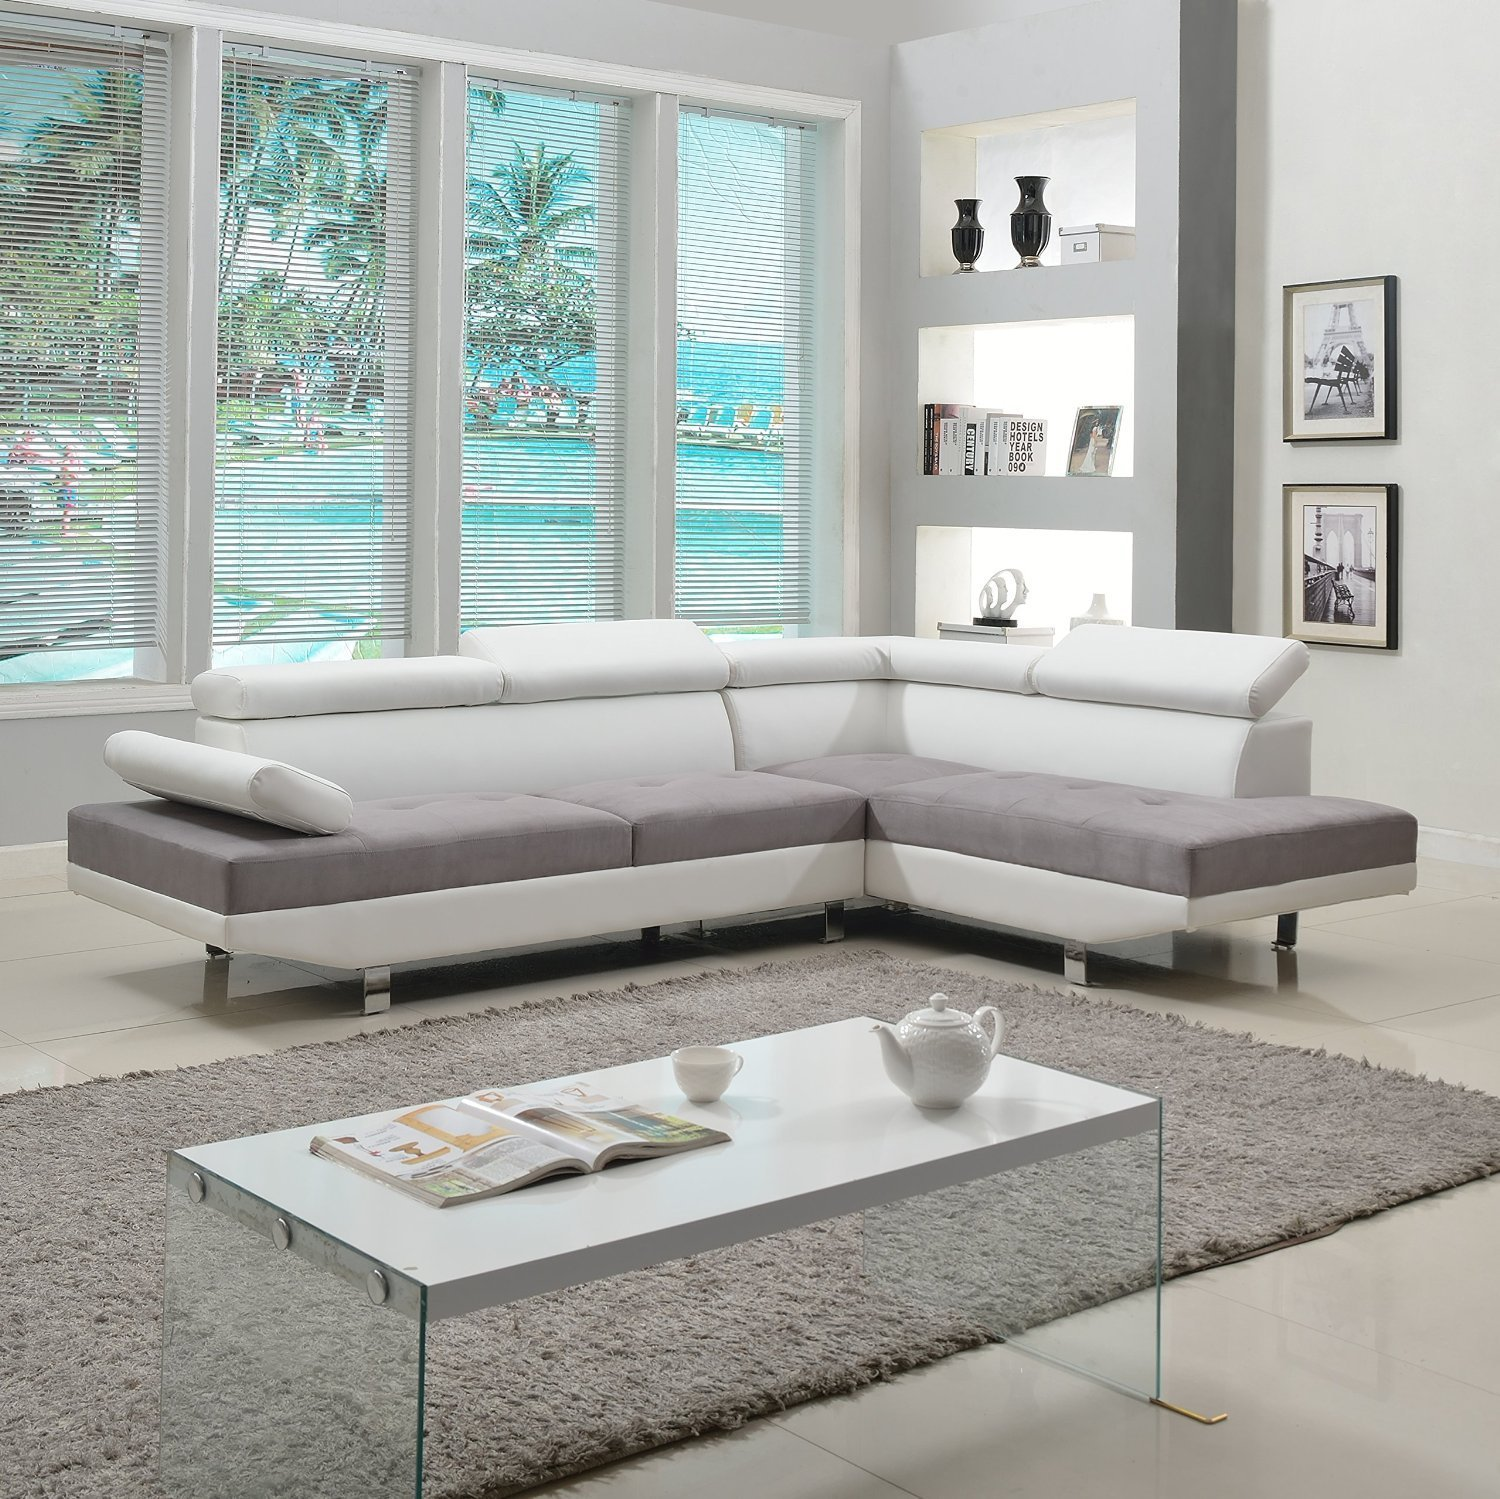 Modern living room furniture review find the best one for Modern white living room furniture